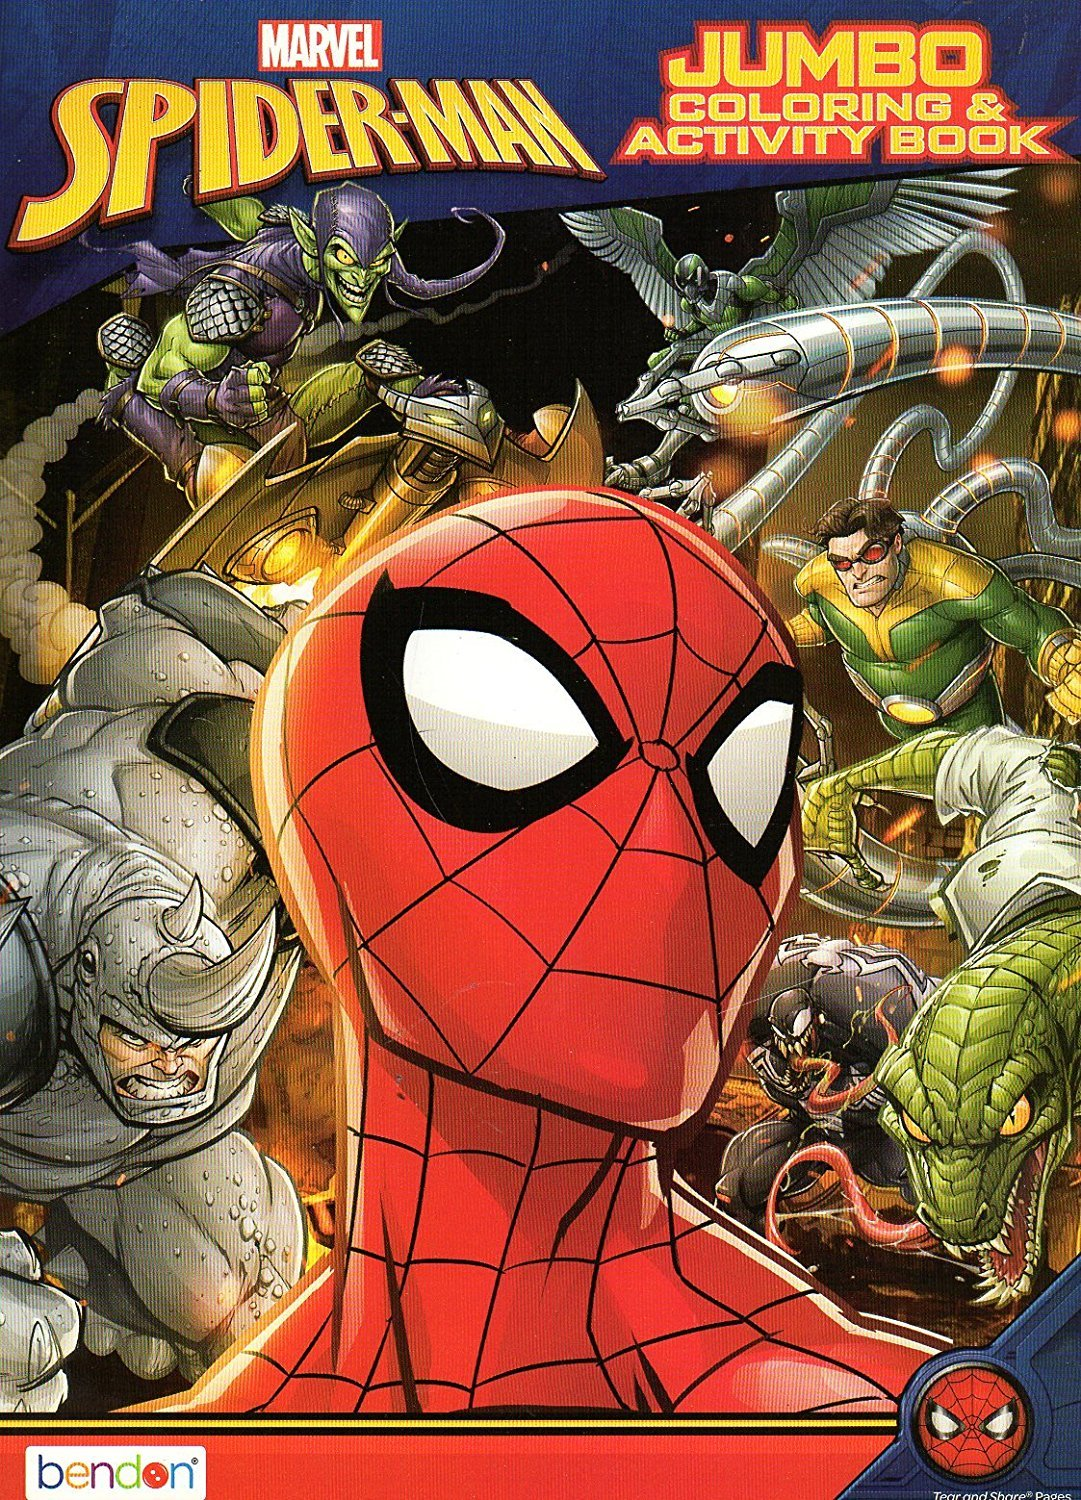 Marvel Spider-Man Jumbo Coloring and Activity Book - v3